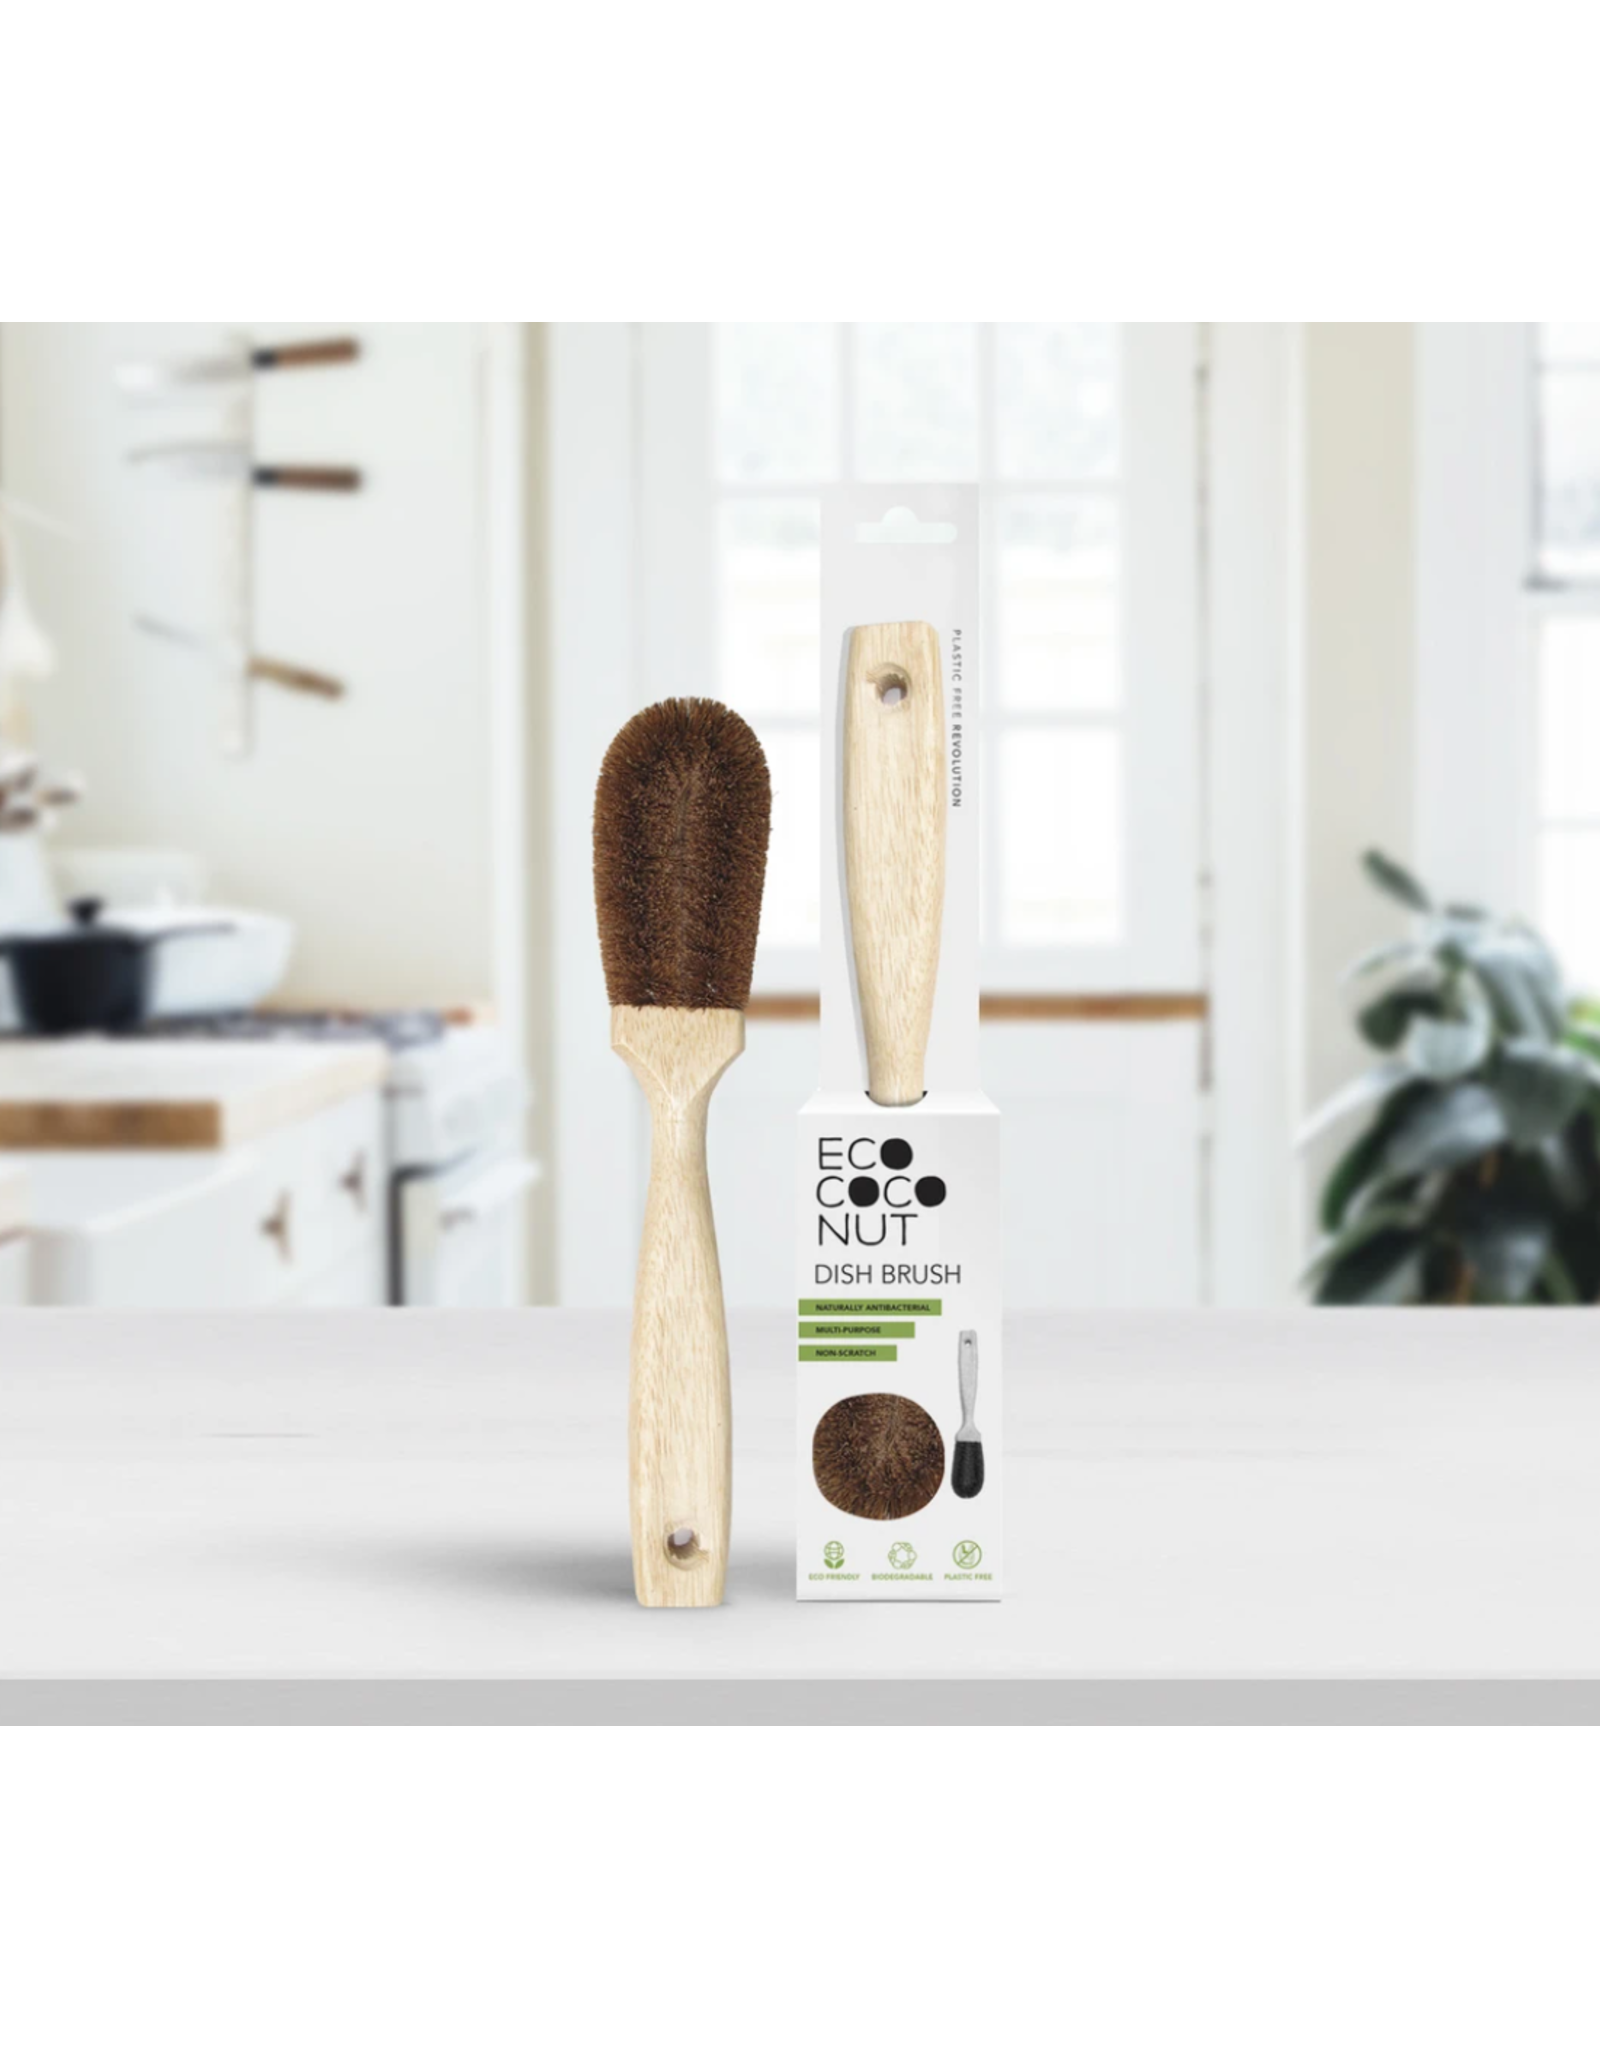 EcoCoconut Dish Brush by EcoCoconut